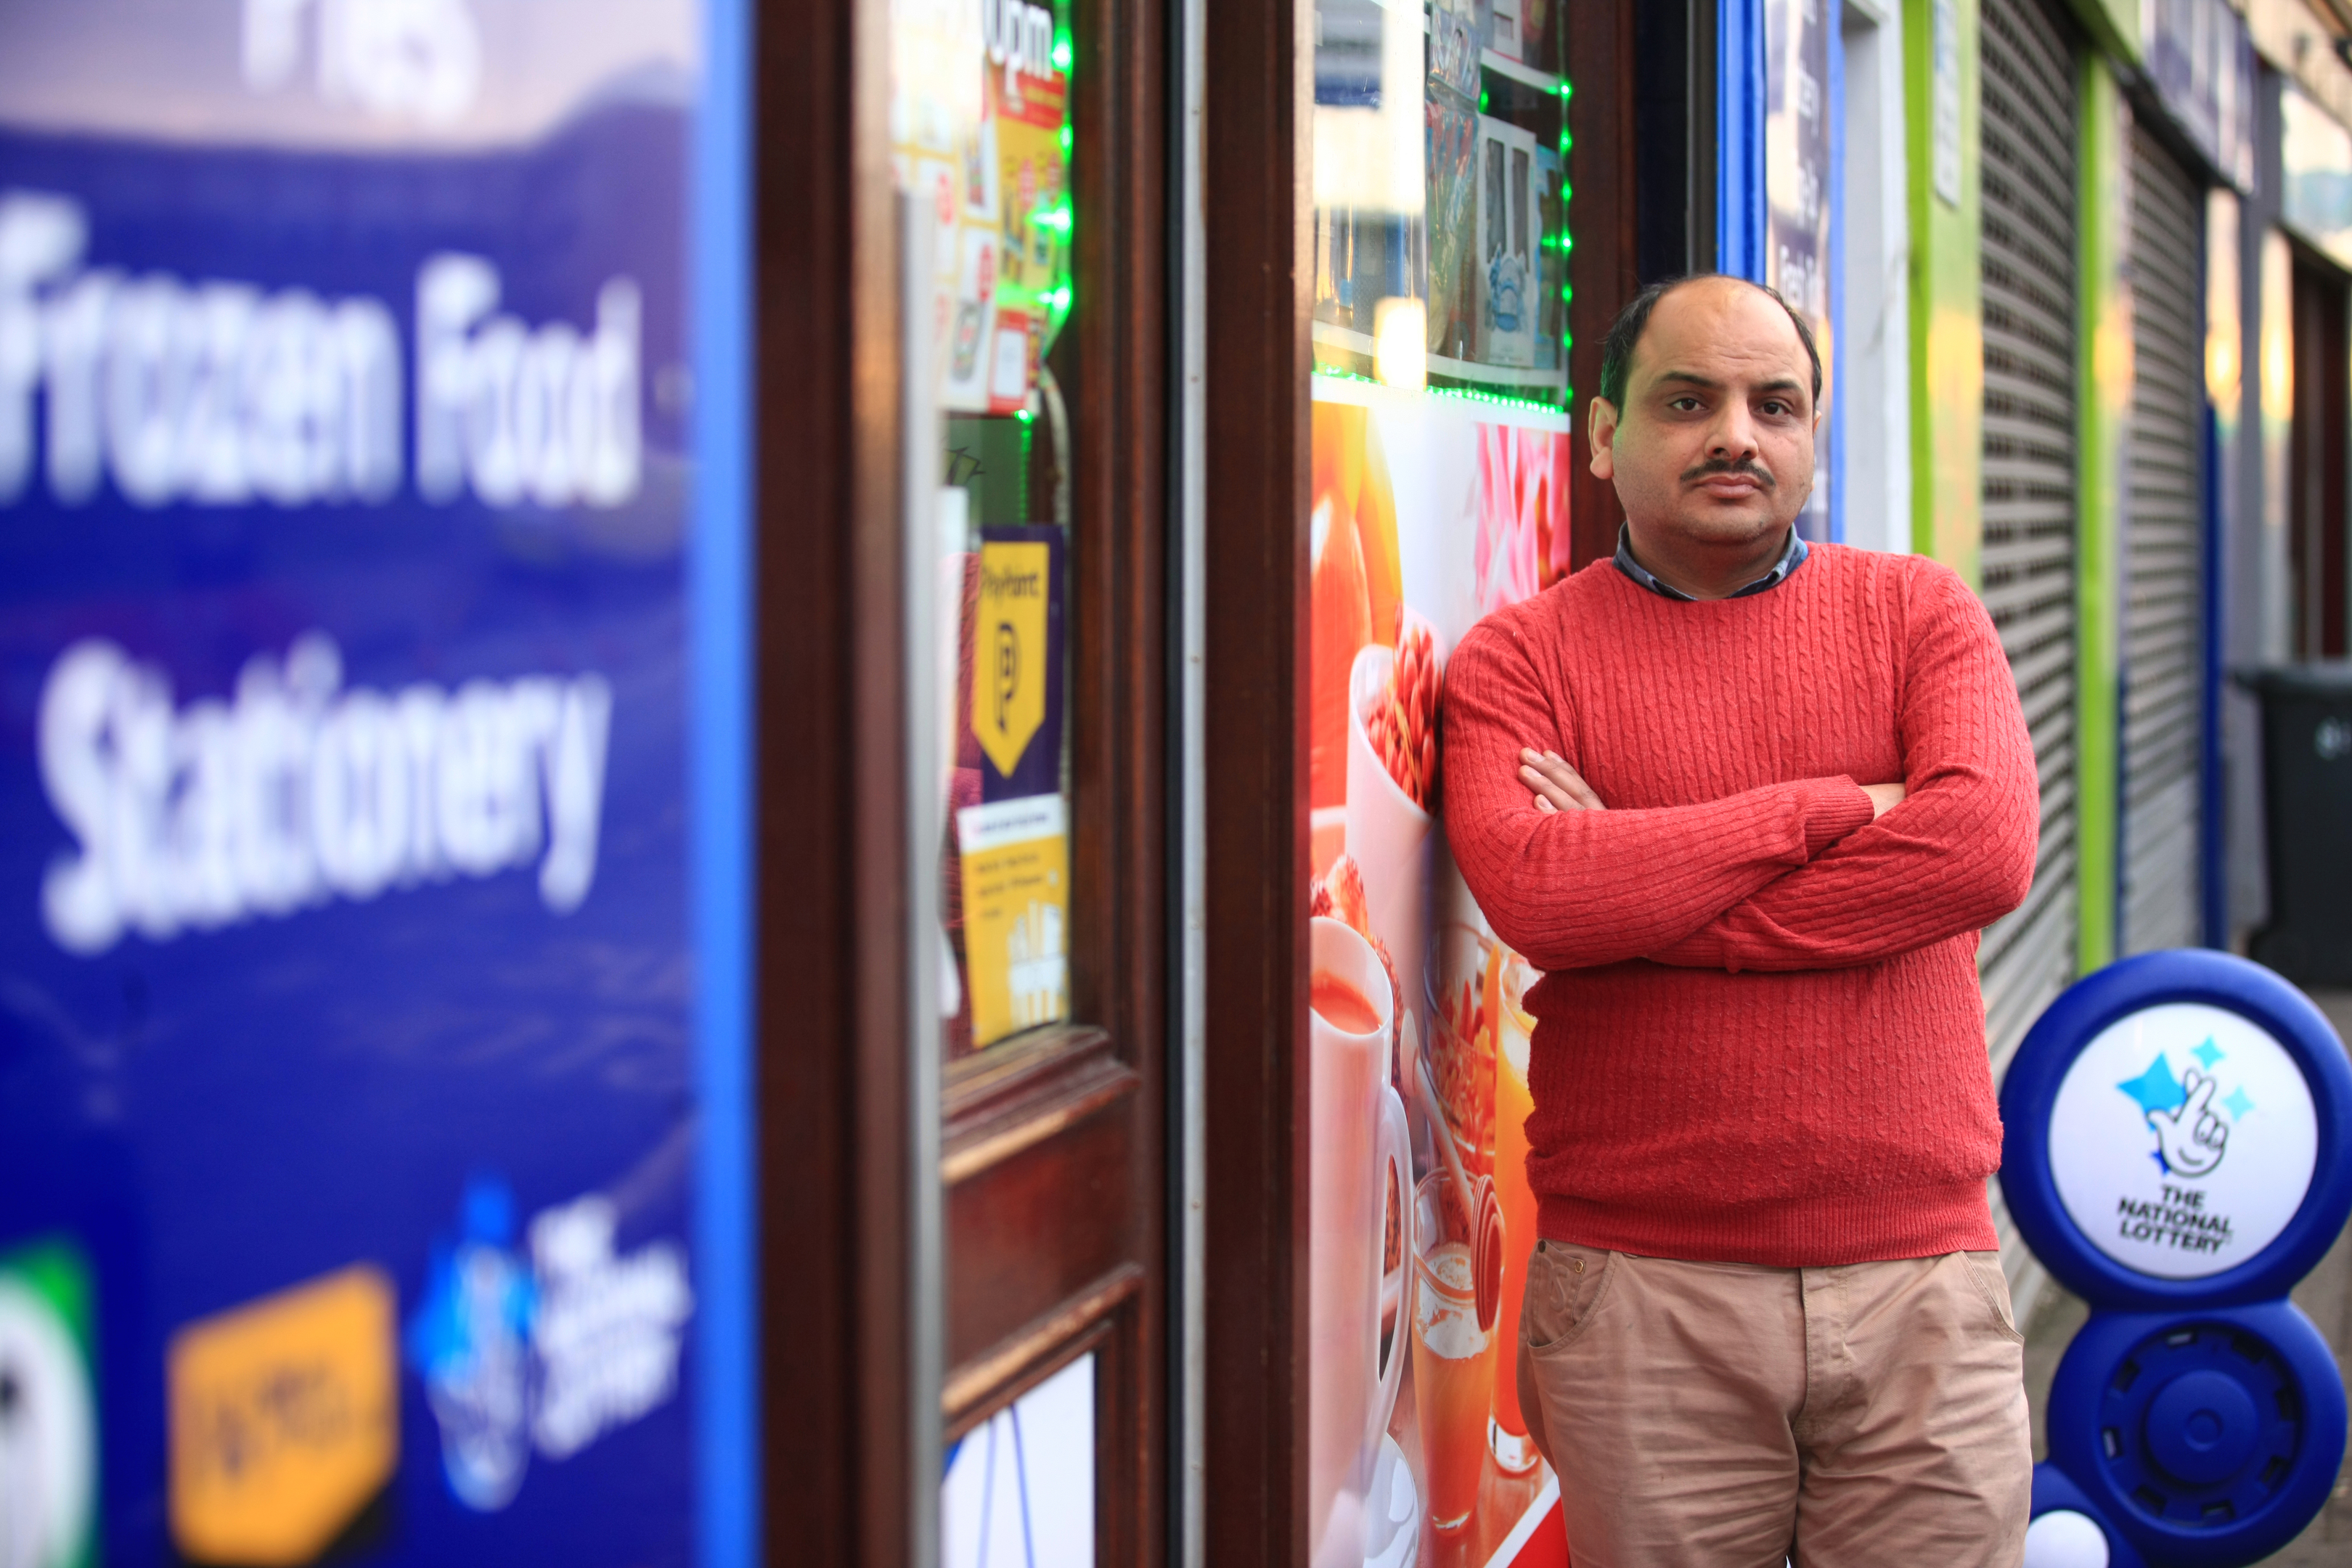 Hassan Majid outside his shop in the Hilltown